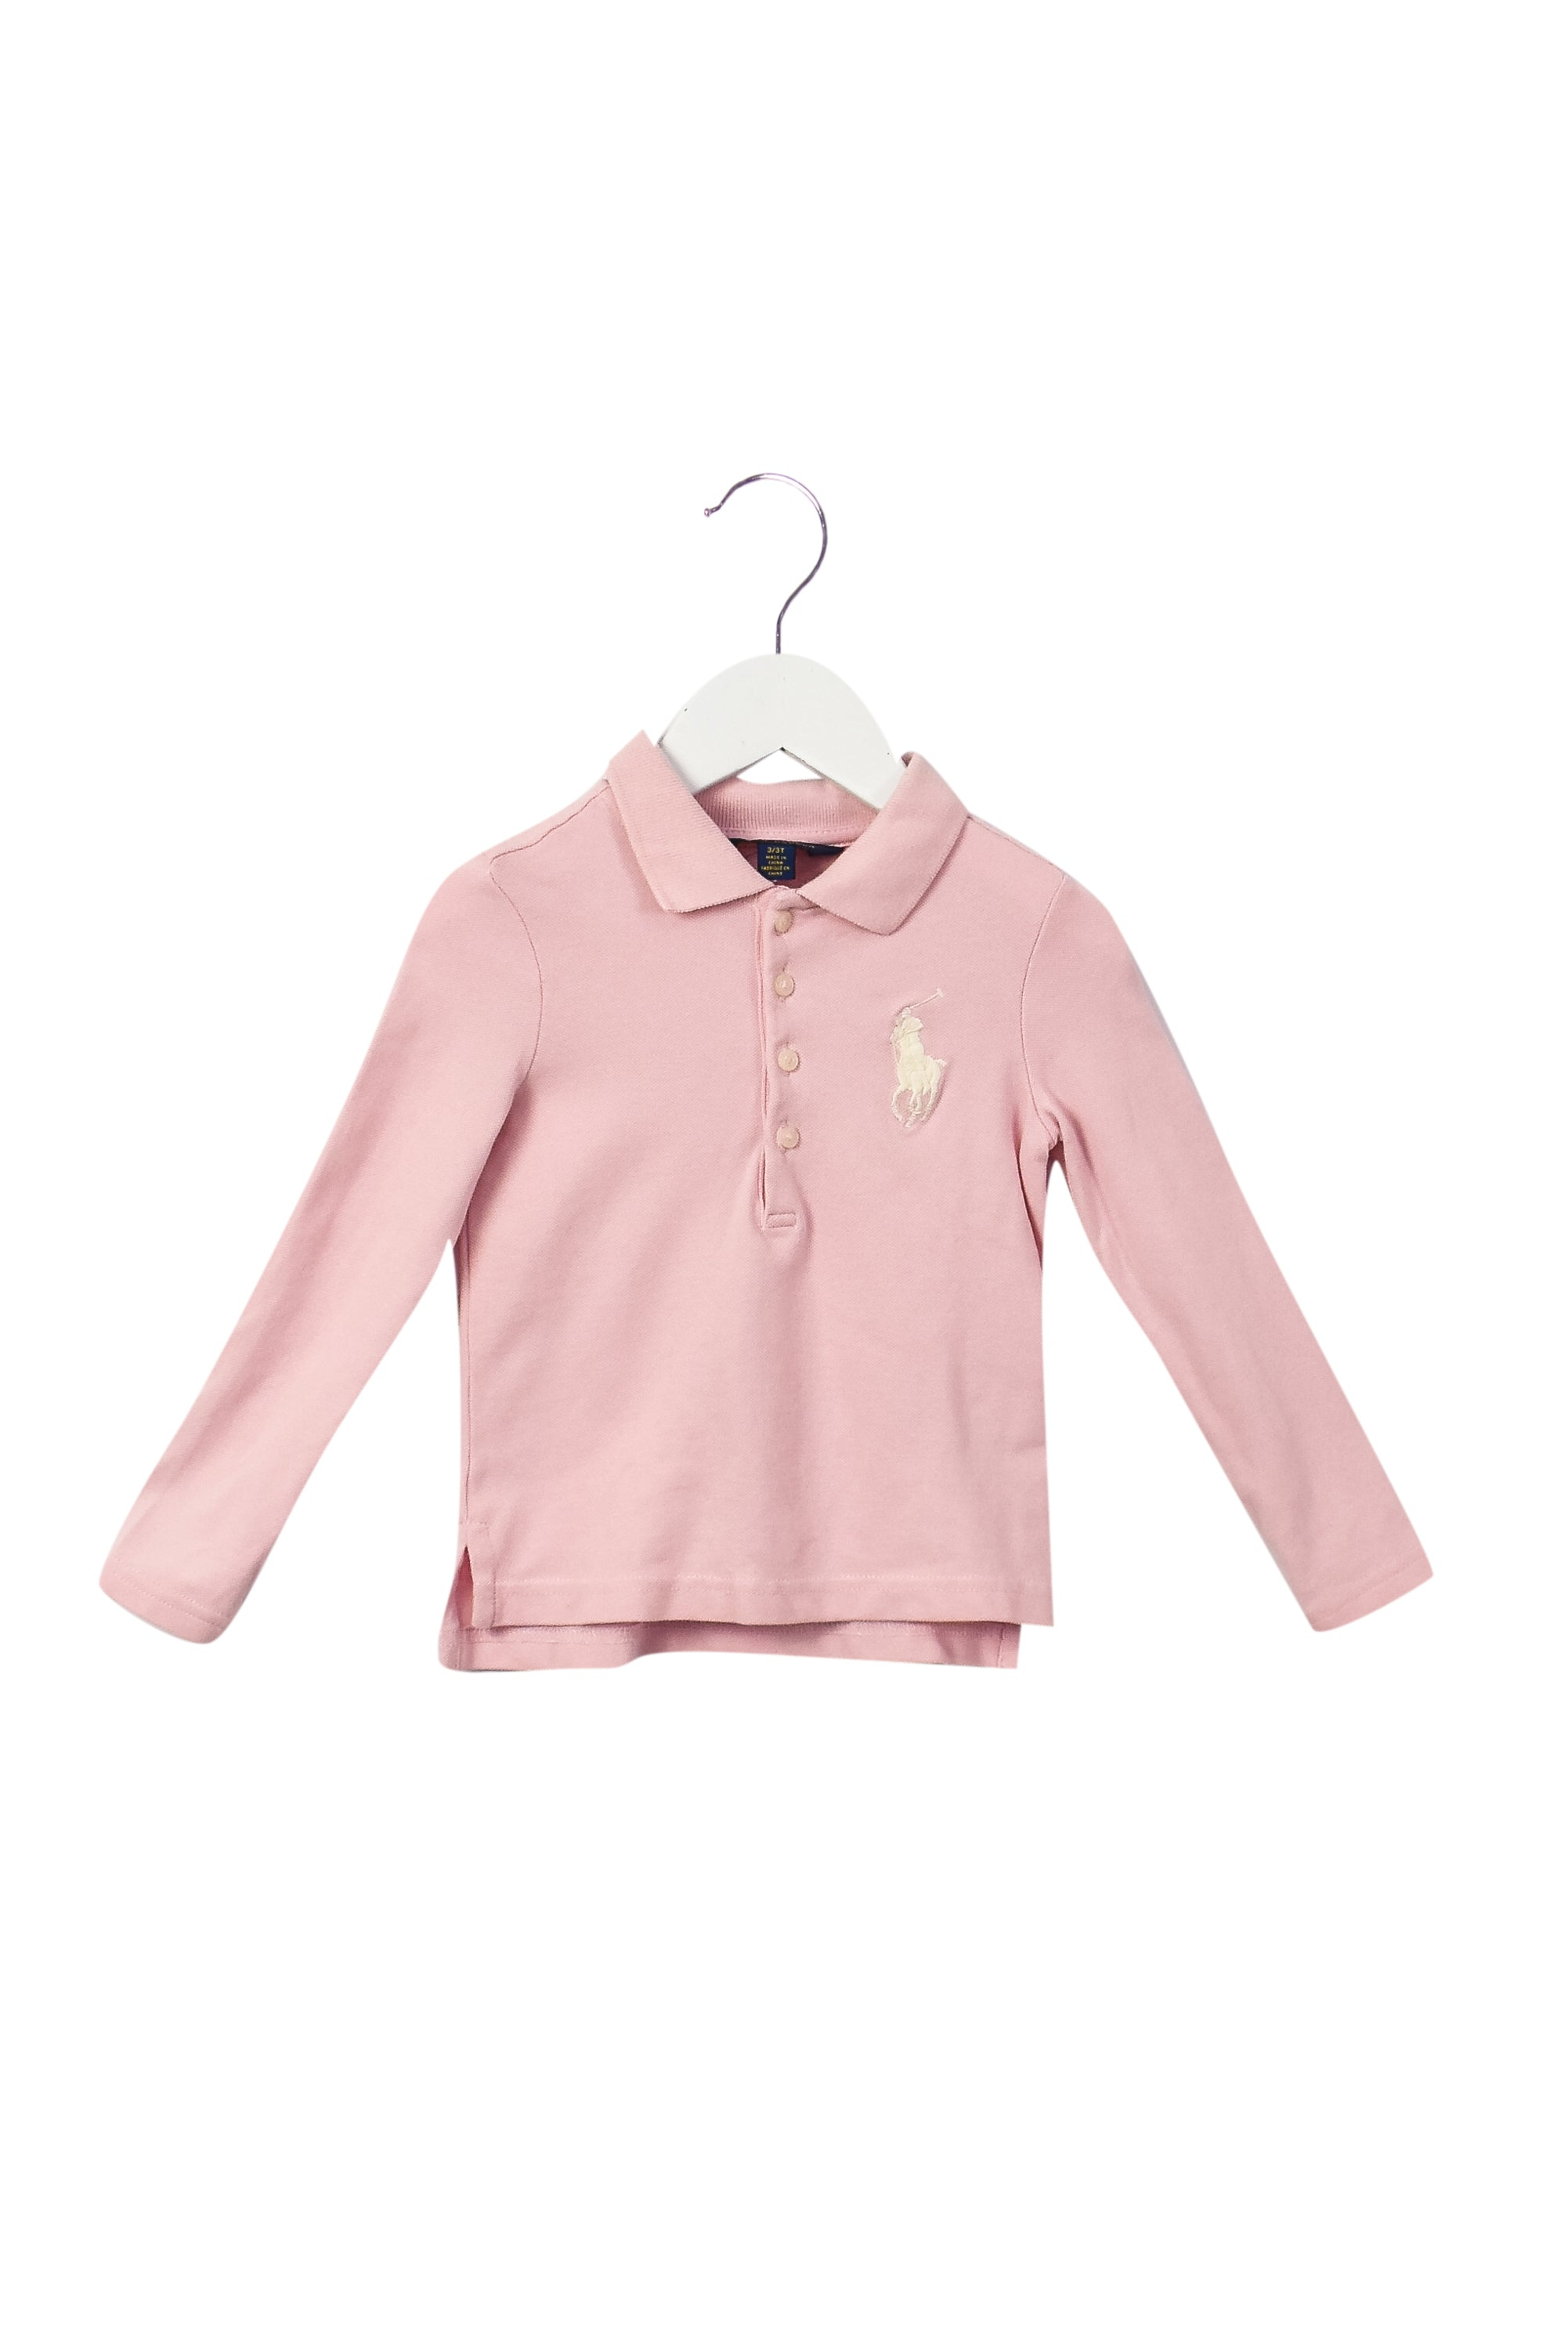 10033642 Polo Ralph Lauren Kids~Polo 3T at Retykle